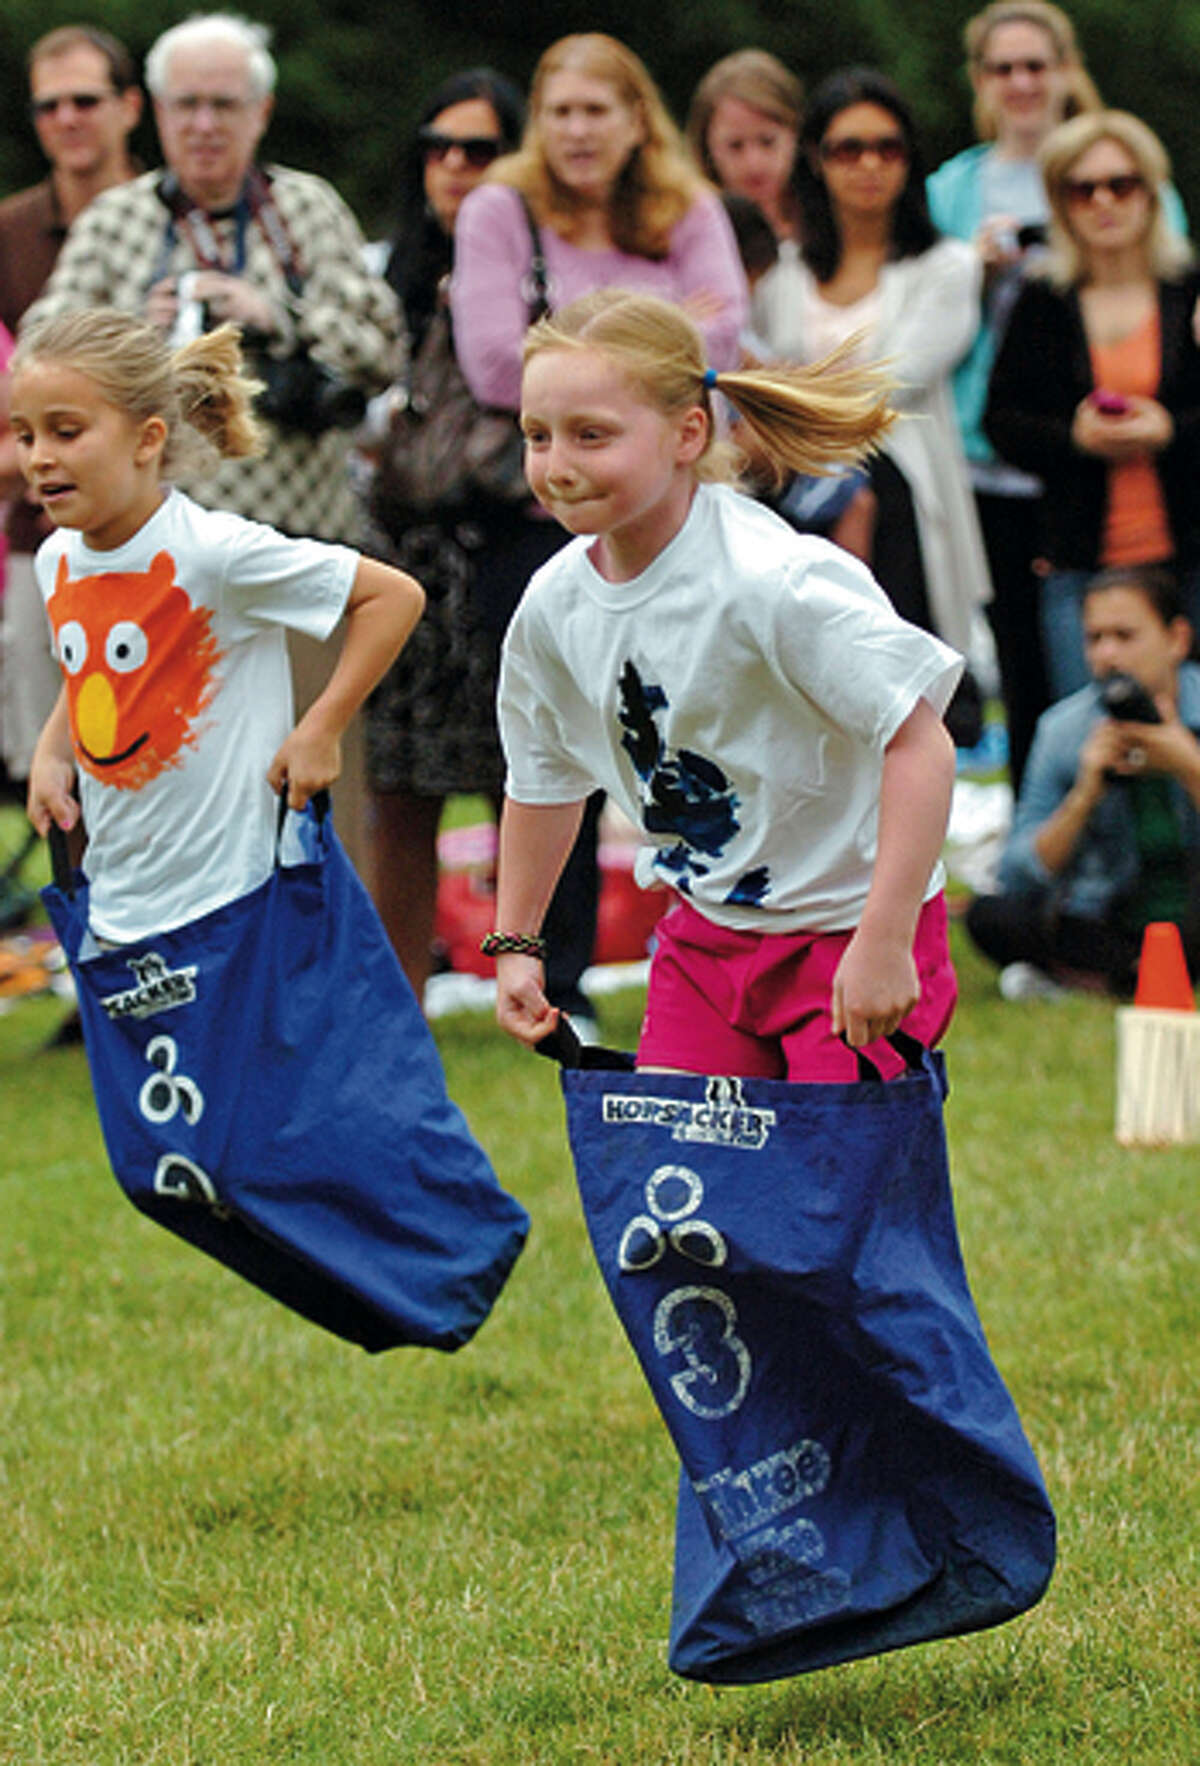 Miller Driscoll first graders Heather Plowright and Sloane Sullivan participate in the sack race during the school's field day Tuesday morning. Hour photo / Erik Trautmann